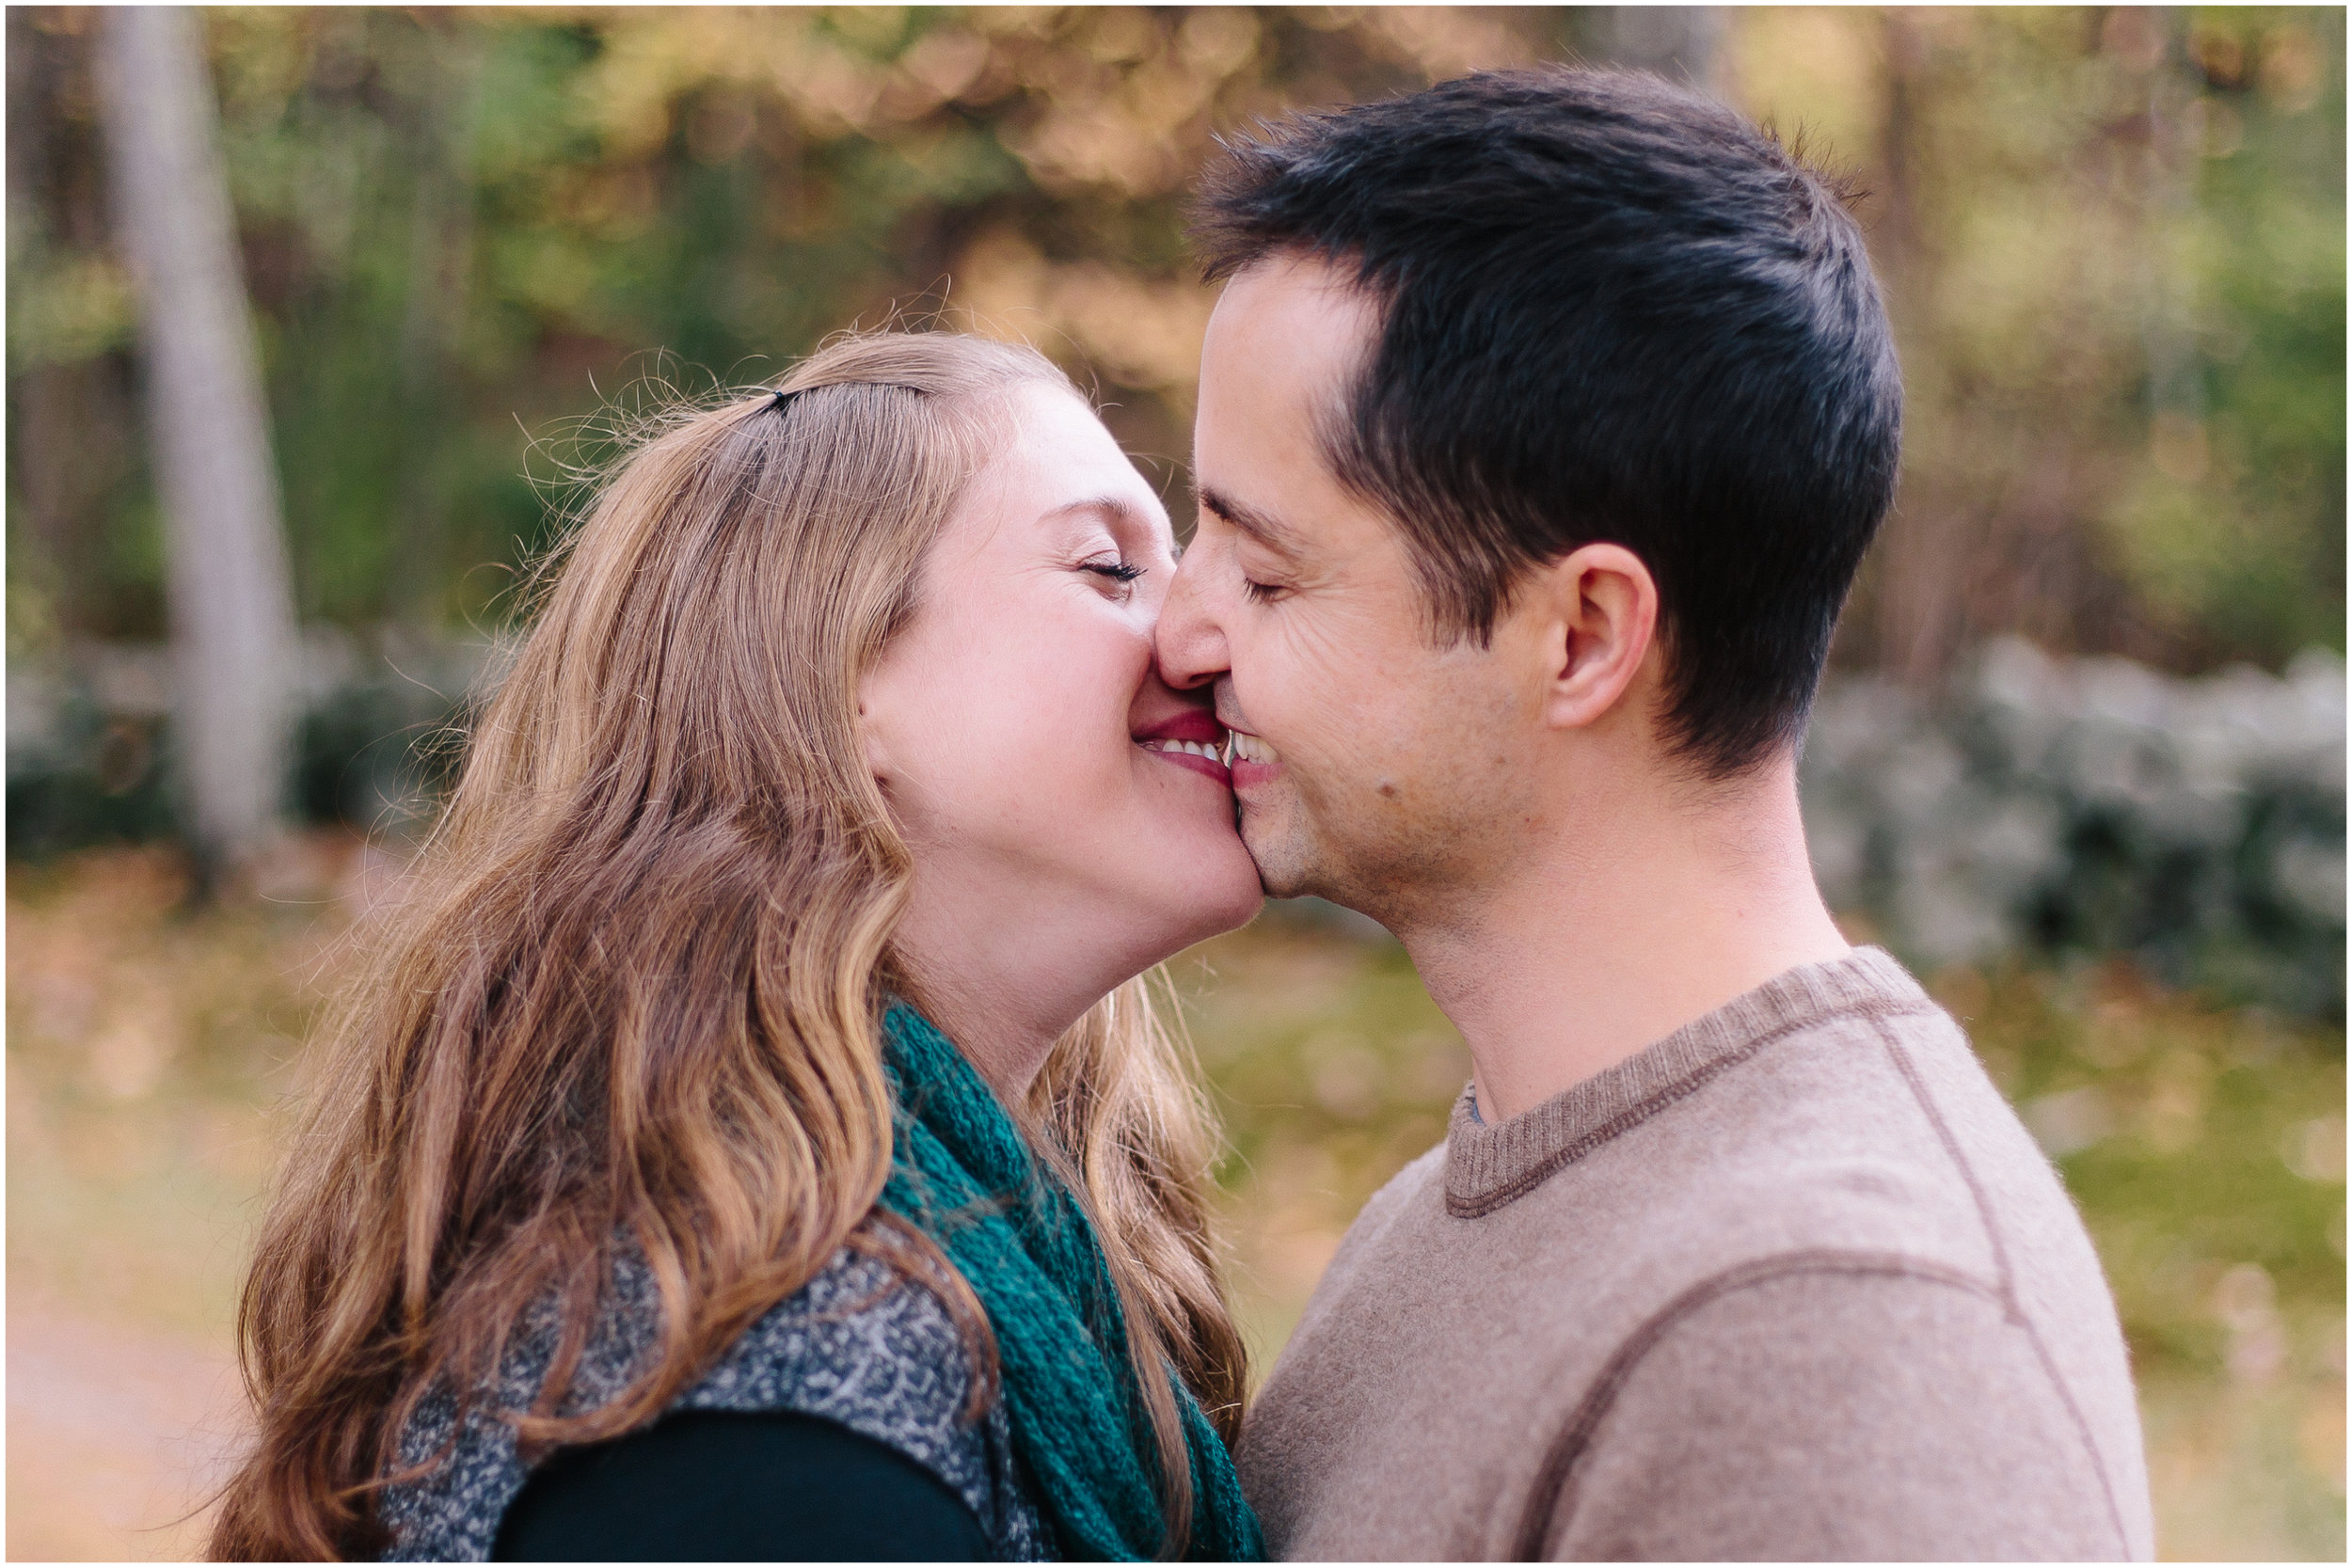 Fall autumn Monson Village Center family photography in Milford, New Hampshire kiss